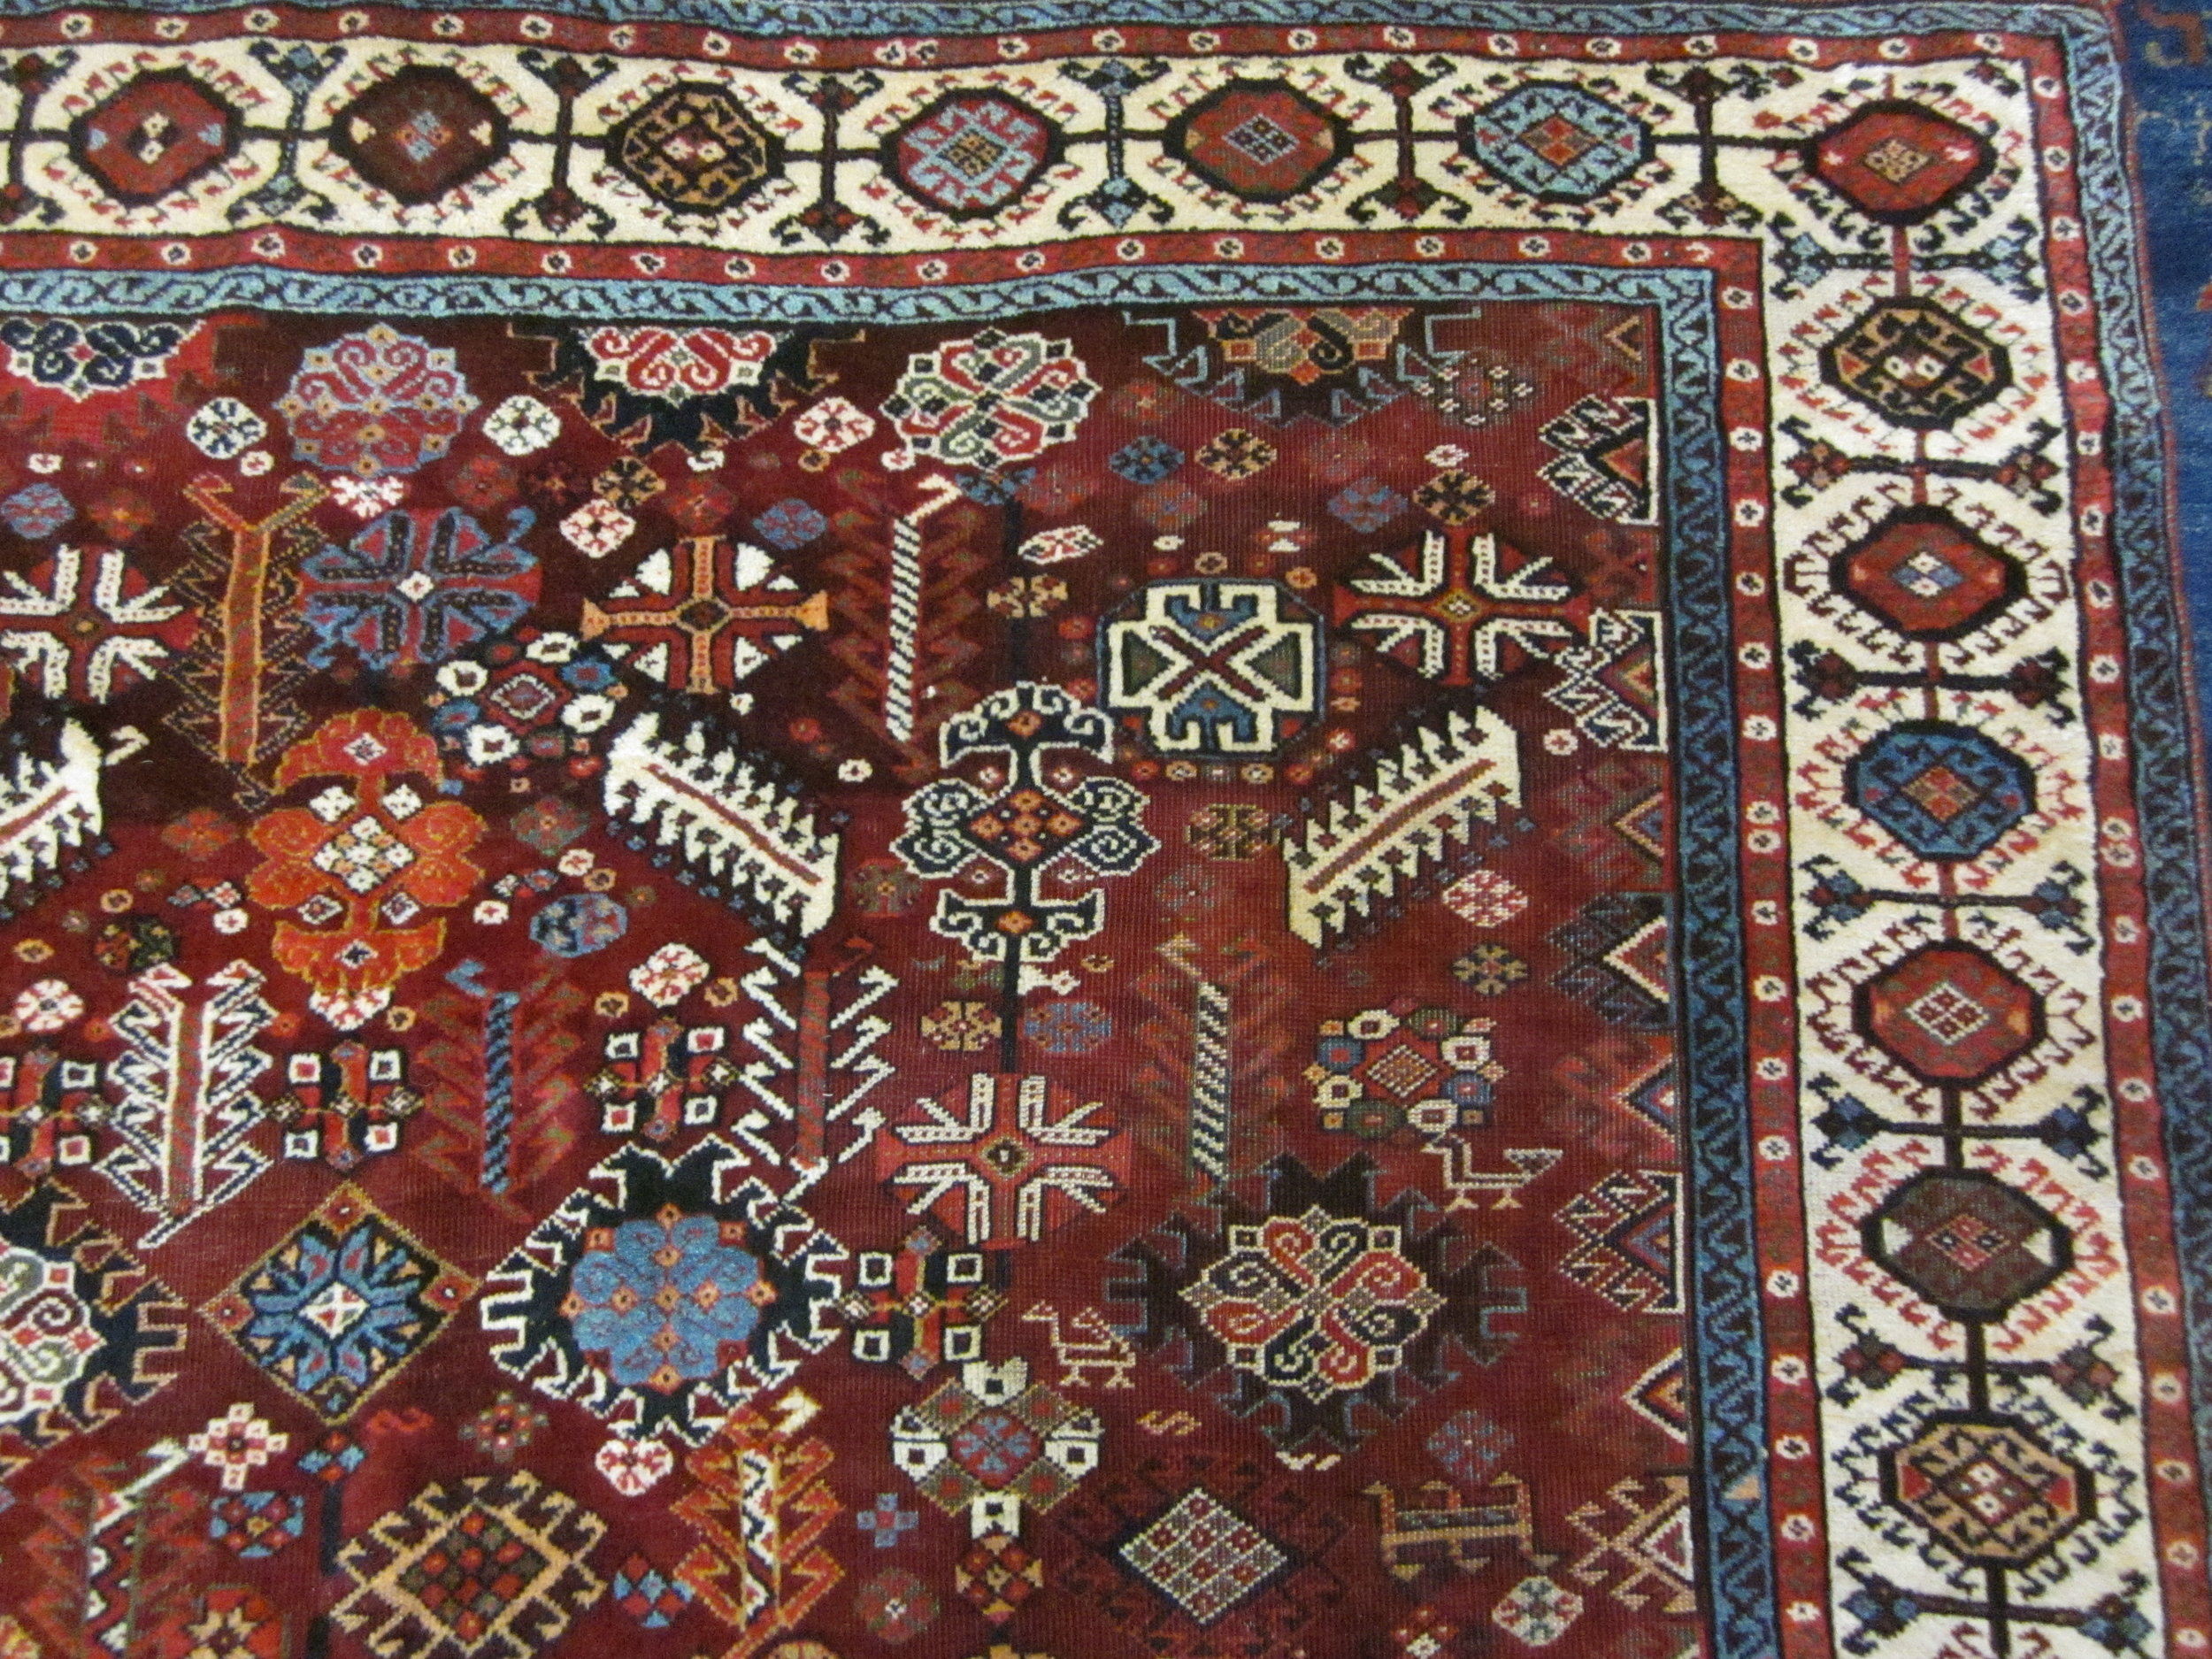 Antique Persian Qashqai in gorgeous jewel tones.